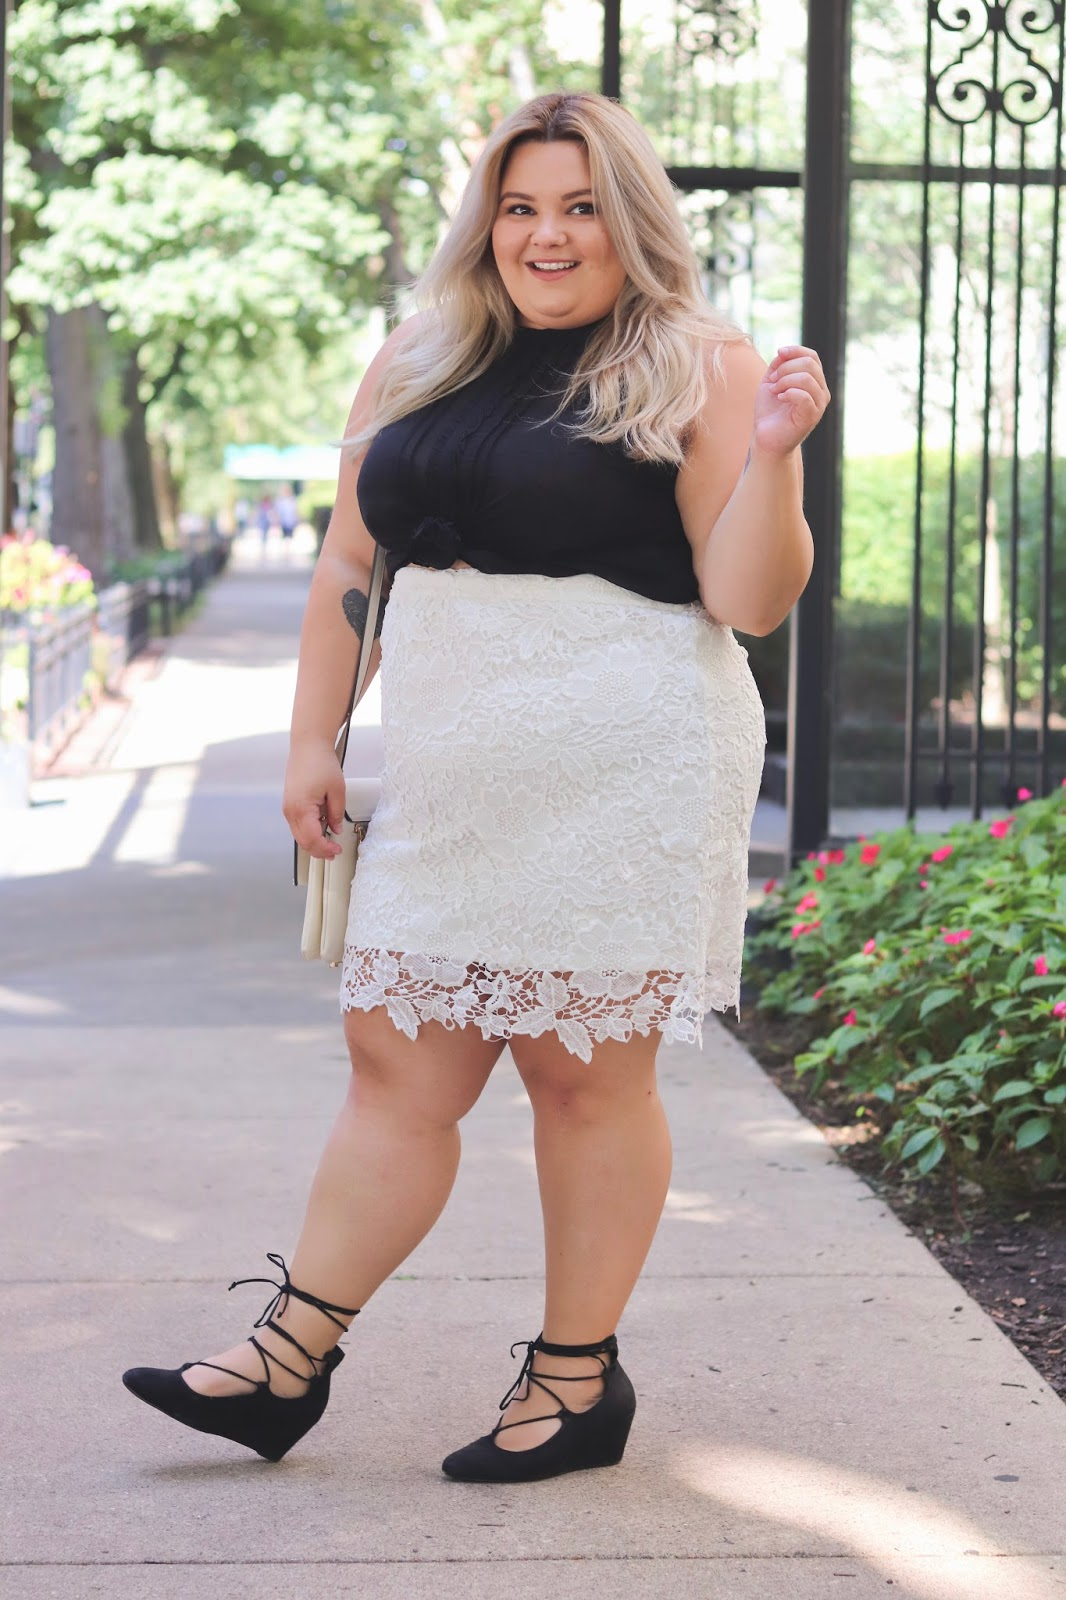 natalie craig, plus size fashion blogger, fashion blogger, Chicago plus size fashion blogger, affordable plus size clothing, society plus, society +, the Anne lace skirt, sexy plus size clothing, confidence and curves, Chicago fashion, Anastasia amico, torrid